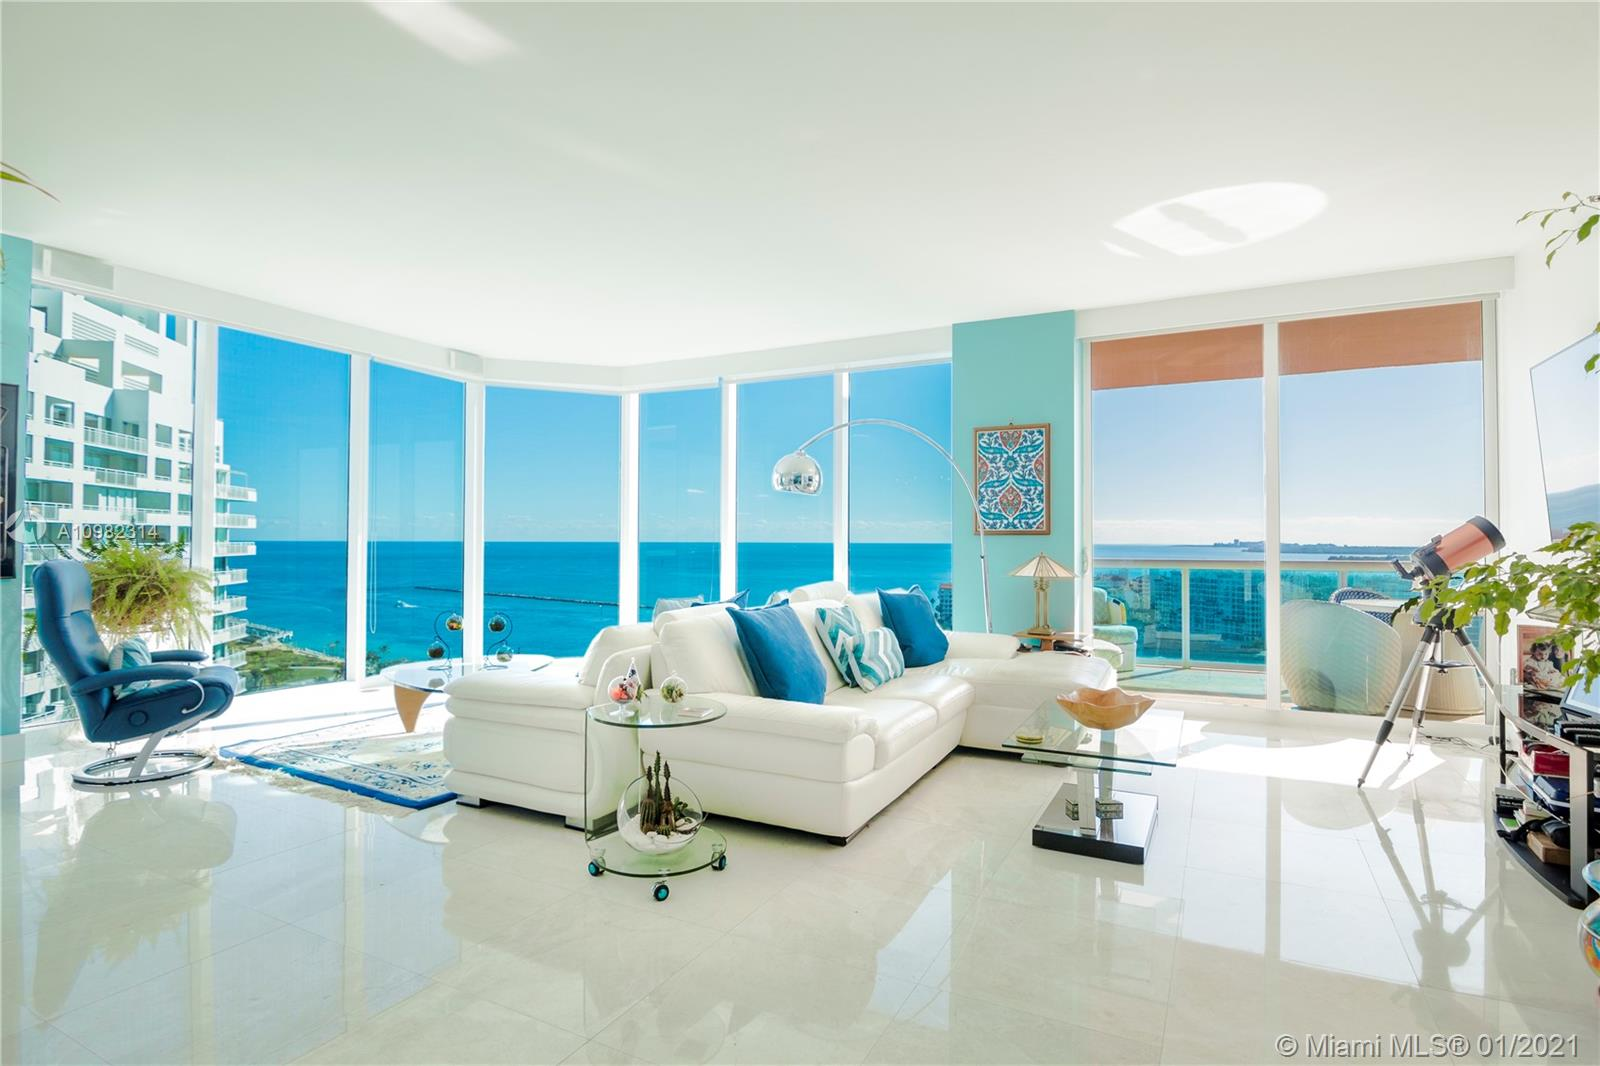 Immaculate 3 bedroom corner residence at Miami Beach's iconic Portofino Tower. Highly coveted and rarely available 01 line, boasting panoramic and picturesque views of South Beach, Biscayne Bay, Fisher Island and beautiful sunsets over the Miami skyline. Floor to ceiling glass with abundance of natural light, brand new marble floors throughout, new high-end stainless steel appliances, Sonos surround system throughout residence and on balconies, exterior lighting installed on balconies. Relax and enjoy unobstructed sunrises and sunsets from your private east and south terraces, or from the master bath tub. The most exceptional apartment available at Portofino.